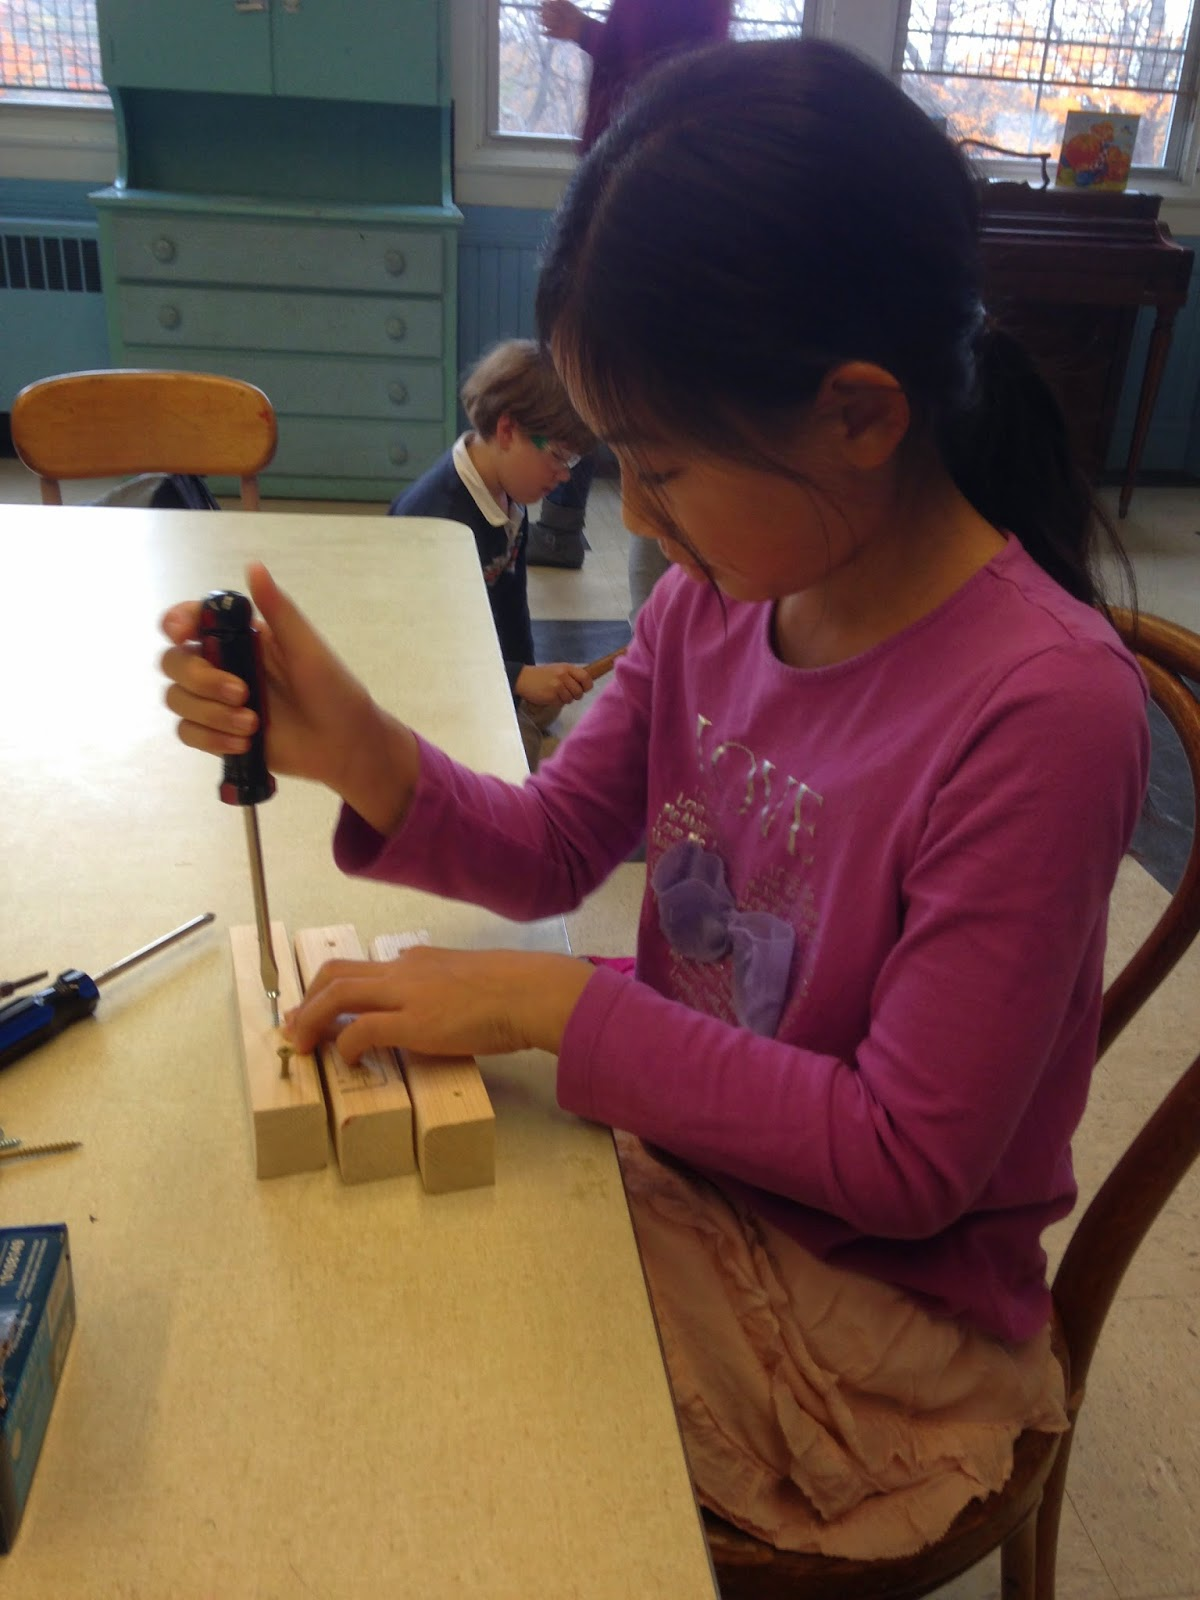 Teaching Kids To Use Tools Homeschool Adventures In Engineering Handson Squishy Circuit Electricity For Circuits We Had An Extremely Rough Piece Of Wood At The Sanding Station By End Class There Was A Nice Coating Saw Dust On Table From All Their Elbow